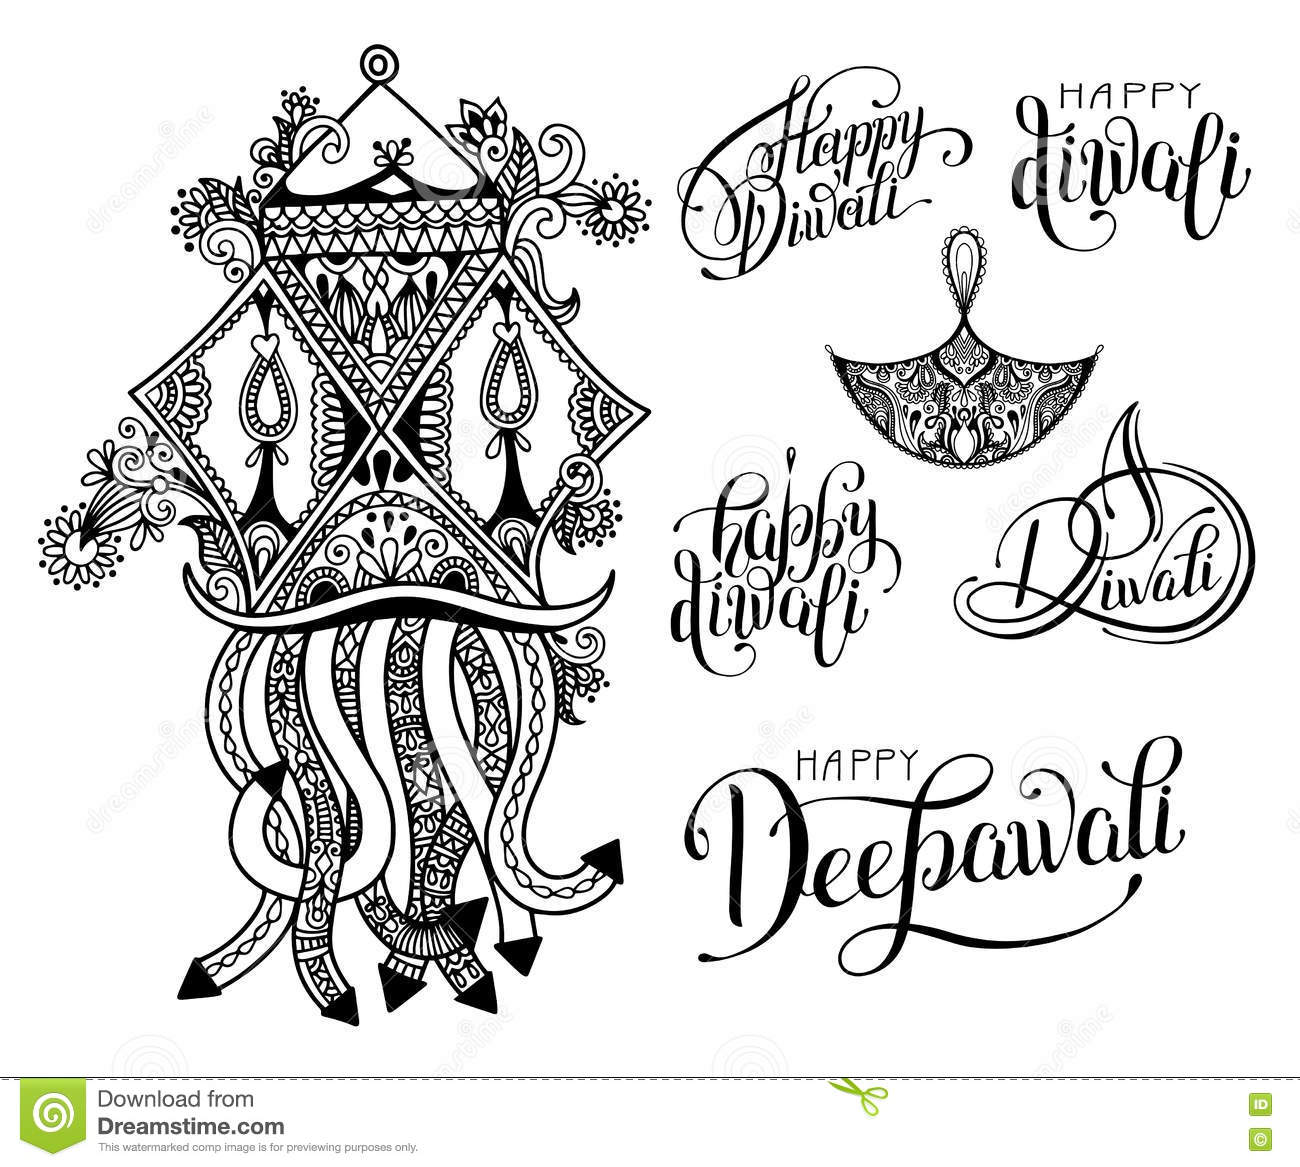 Set of black and white hand drawing design element lettering inscription for diwali celebration indian fire festival collection vector illustration